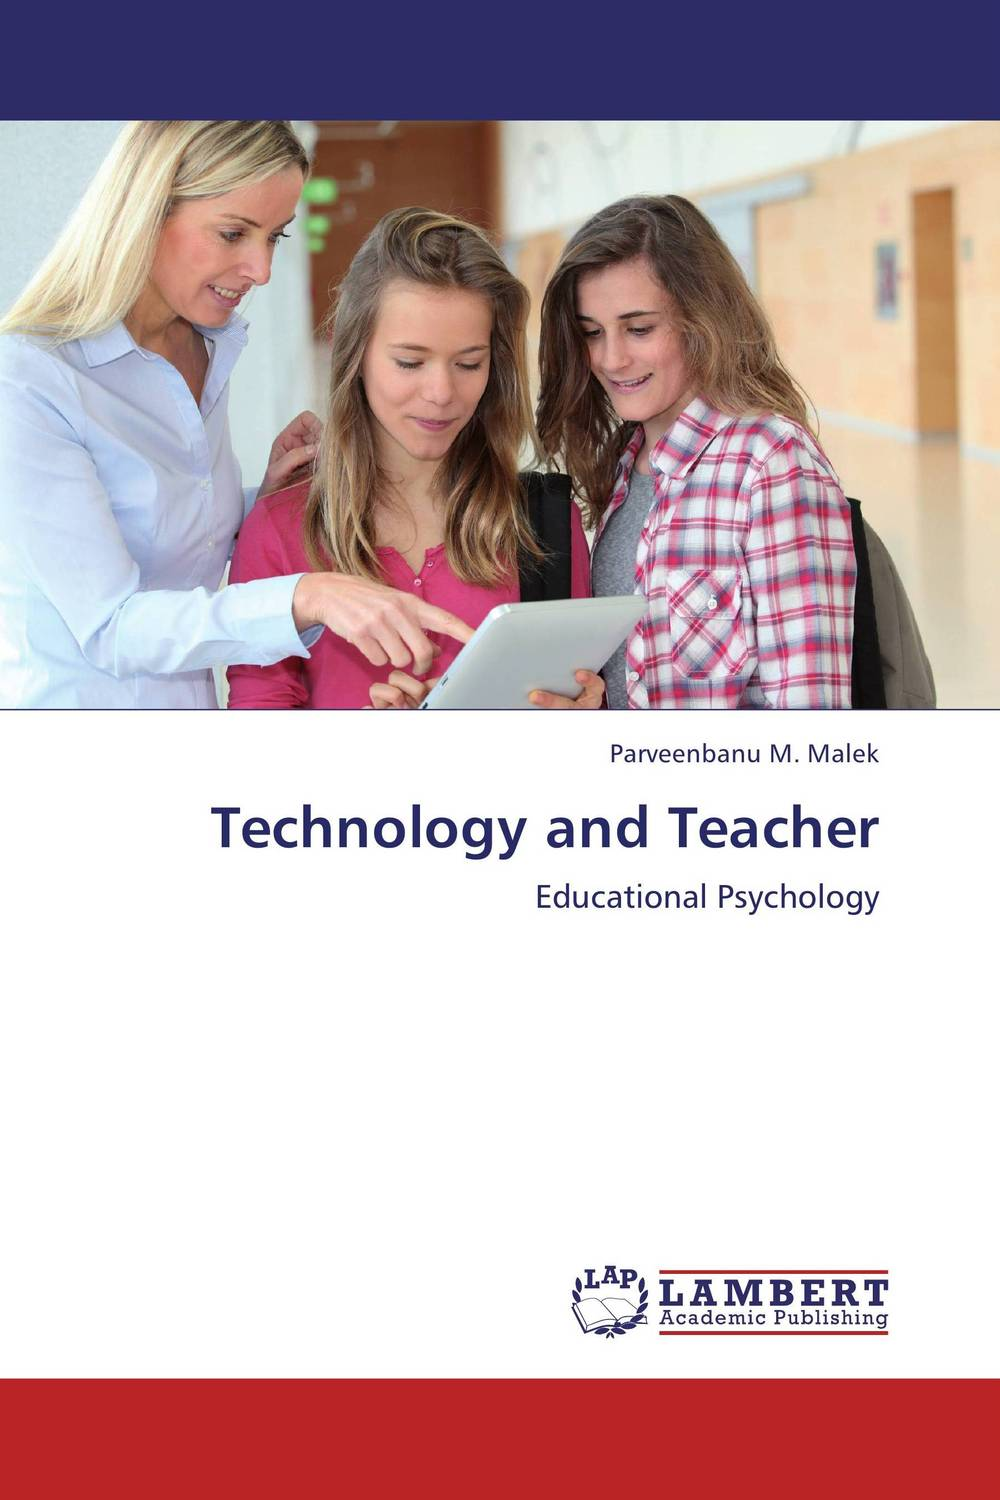 Technology and Teacher seeing things as they are